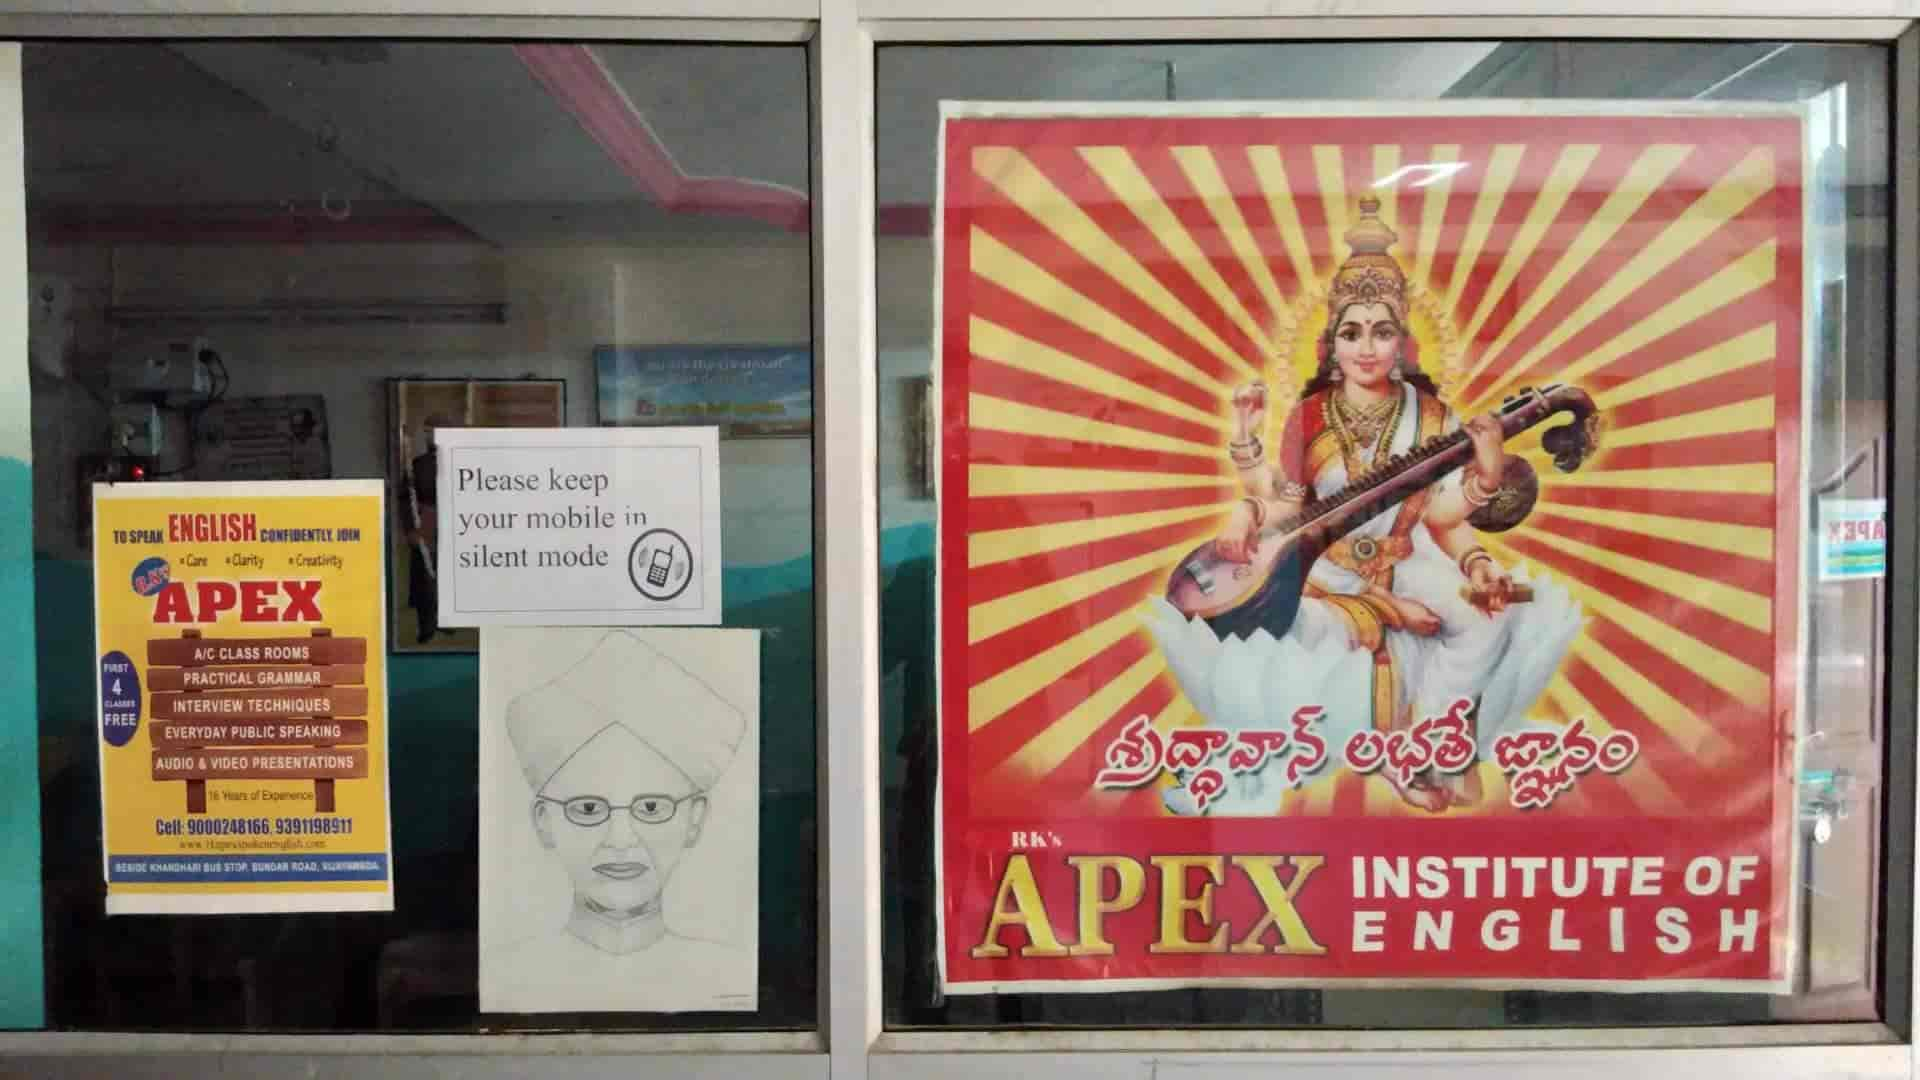 Rks Apex Institute Of English, MG Road - Language Classes For